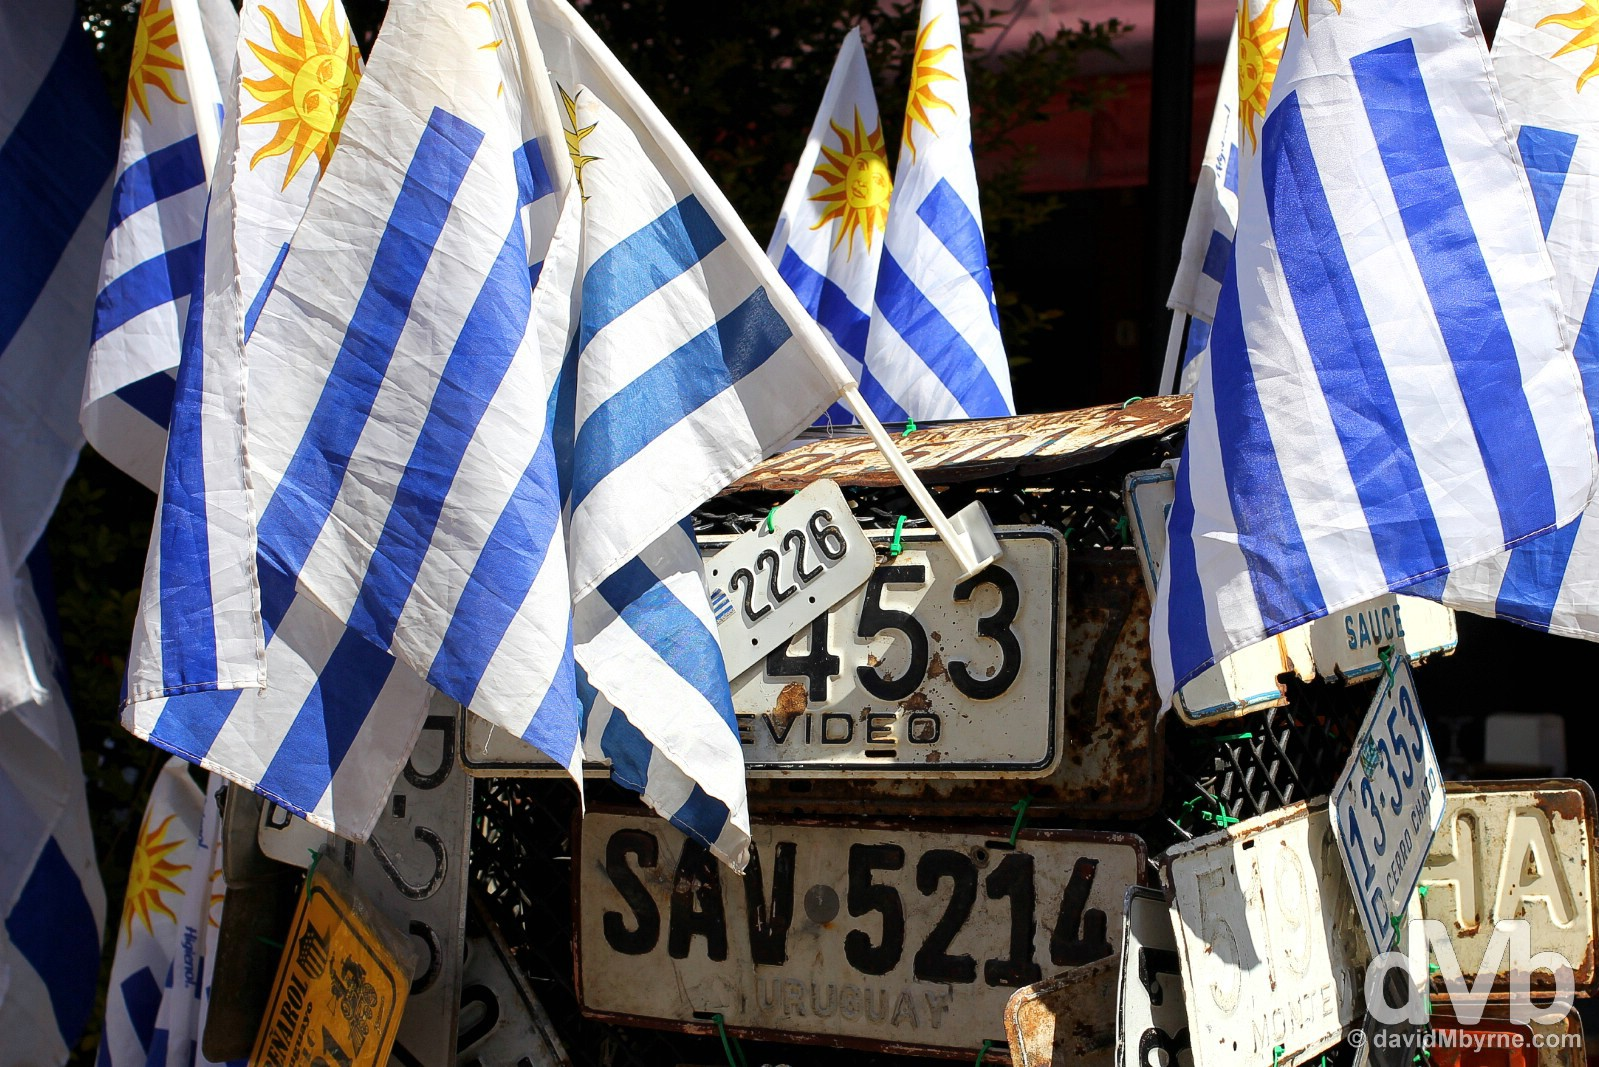 Flags on the streets of Montevideo, Uruguay. September 18, 2015.